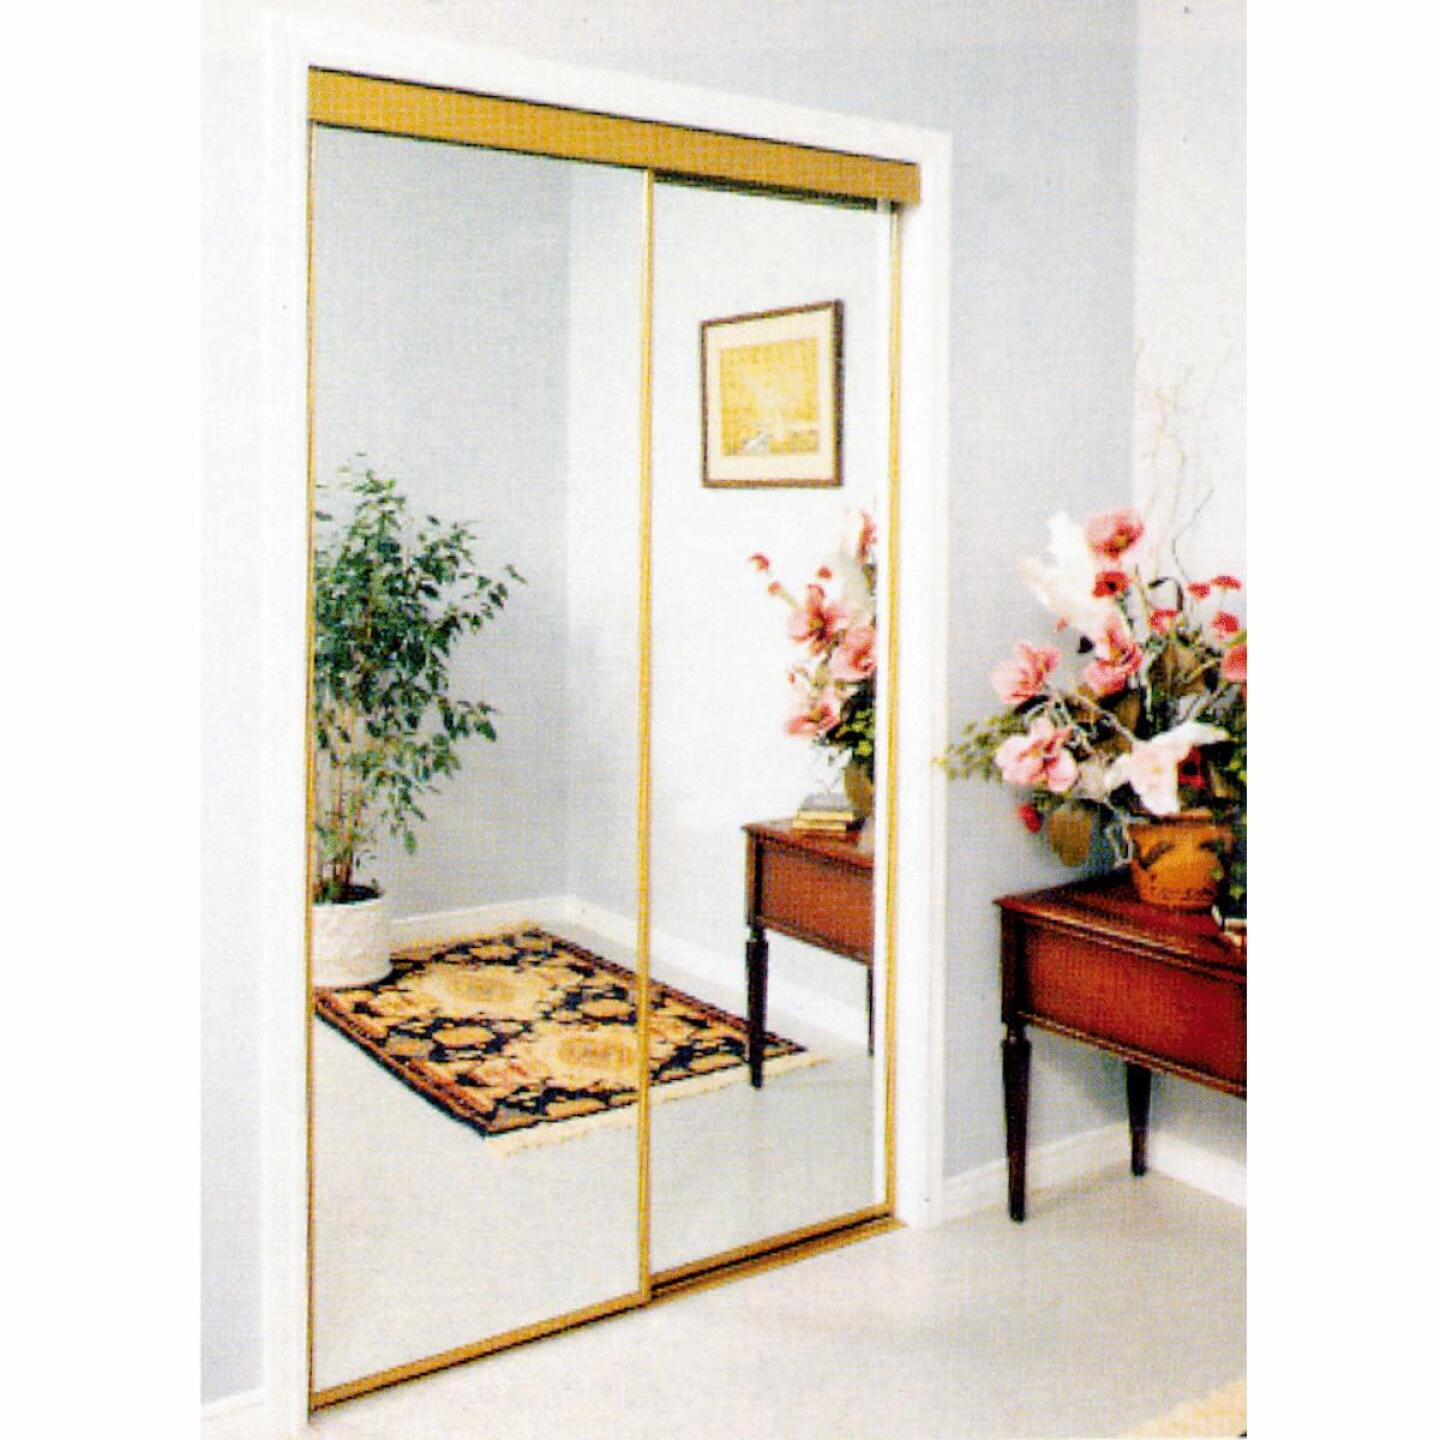 Erias 4050 Series 59 In. W. x 80-1/2 In. H. Mayan Gold Top Hung Mirrored Bypass Door Image 1